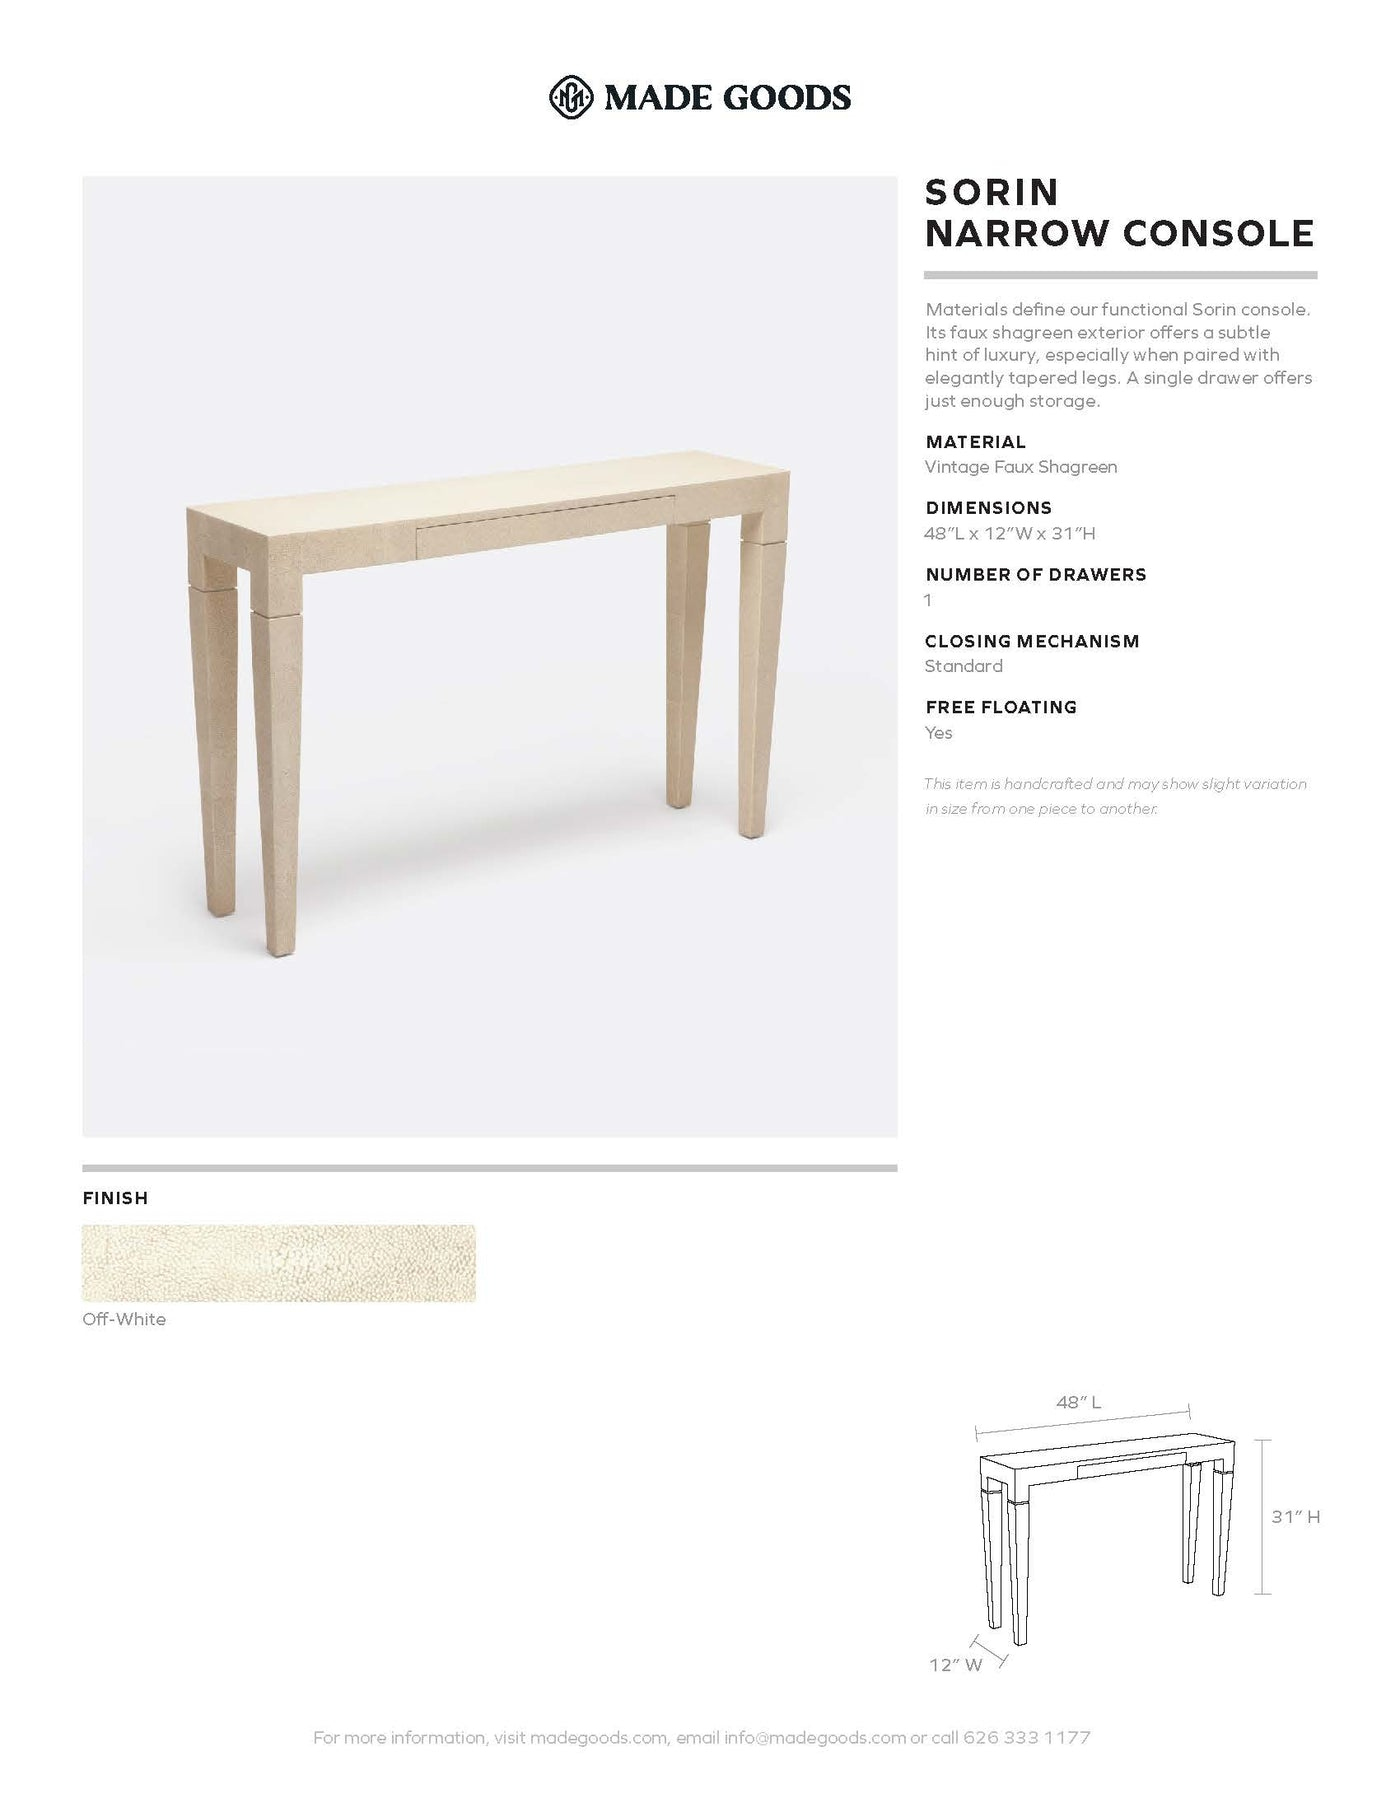 made goods sorin narrow console tearsheet